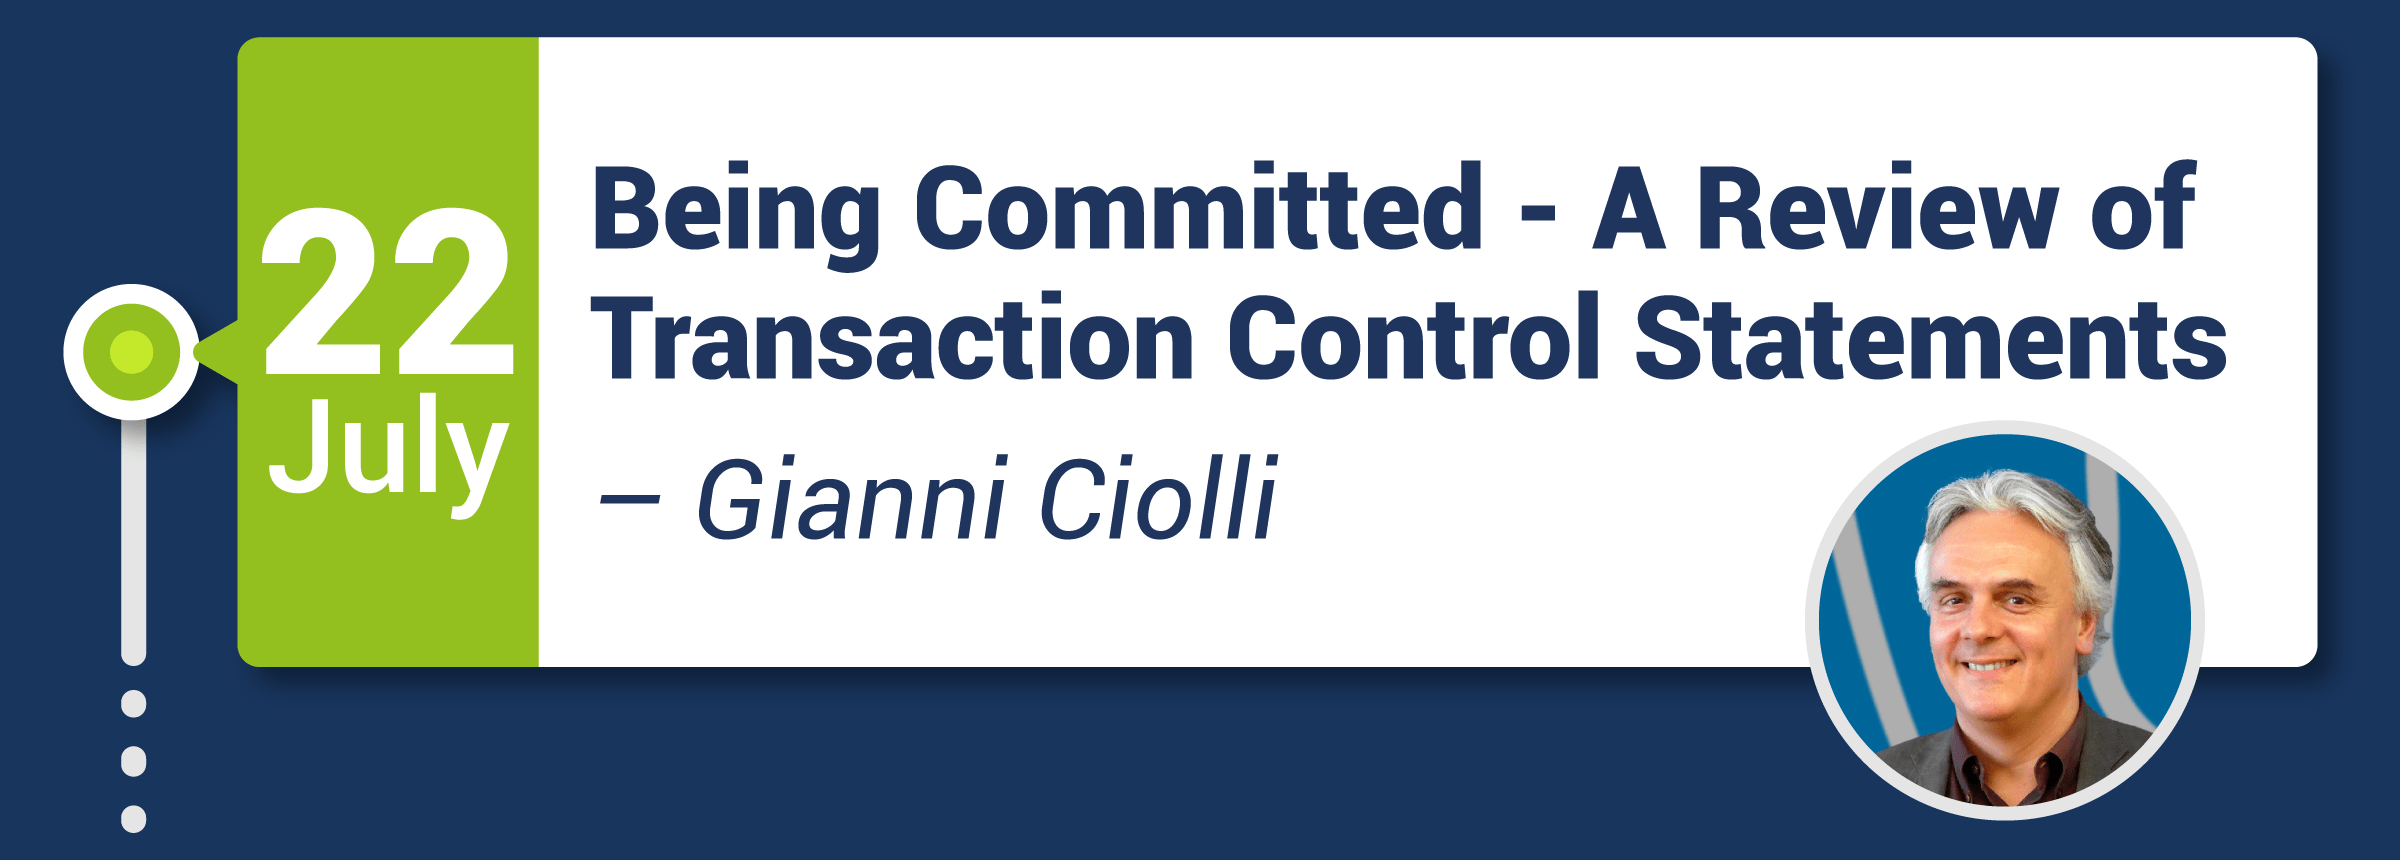 Webinar: Being Committed - A Review of Transaction Control Statements